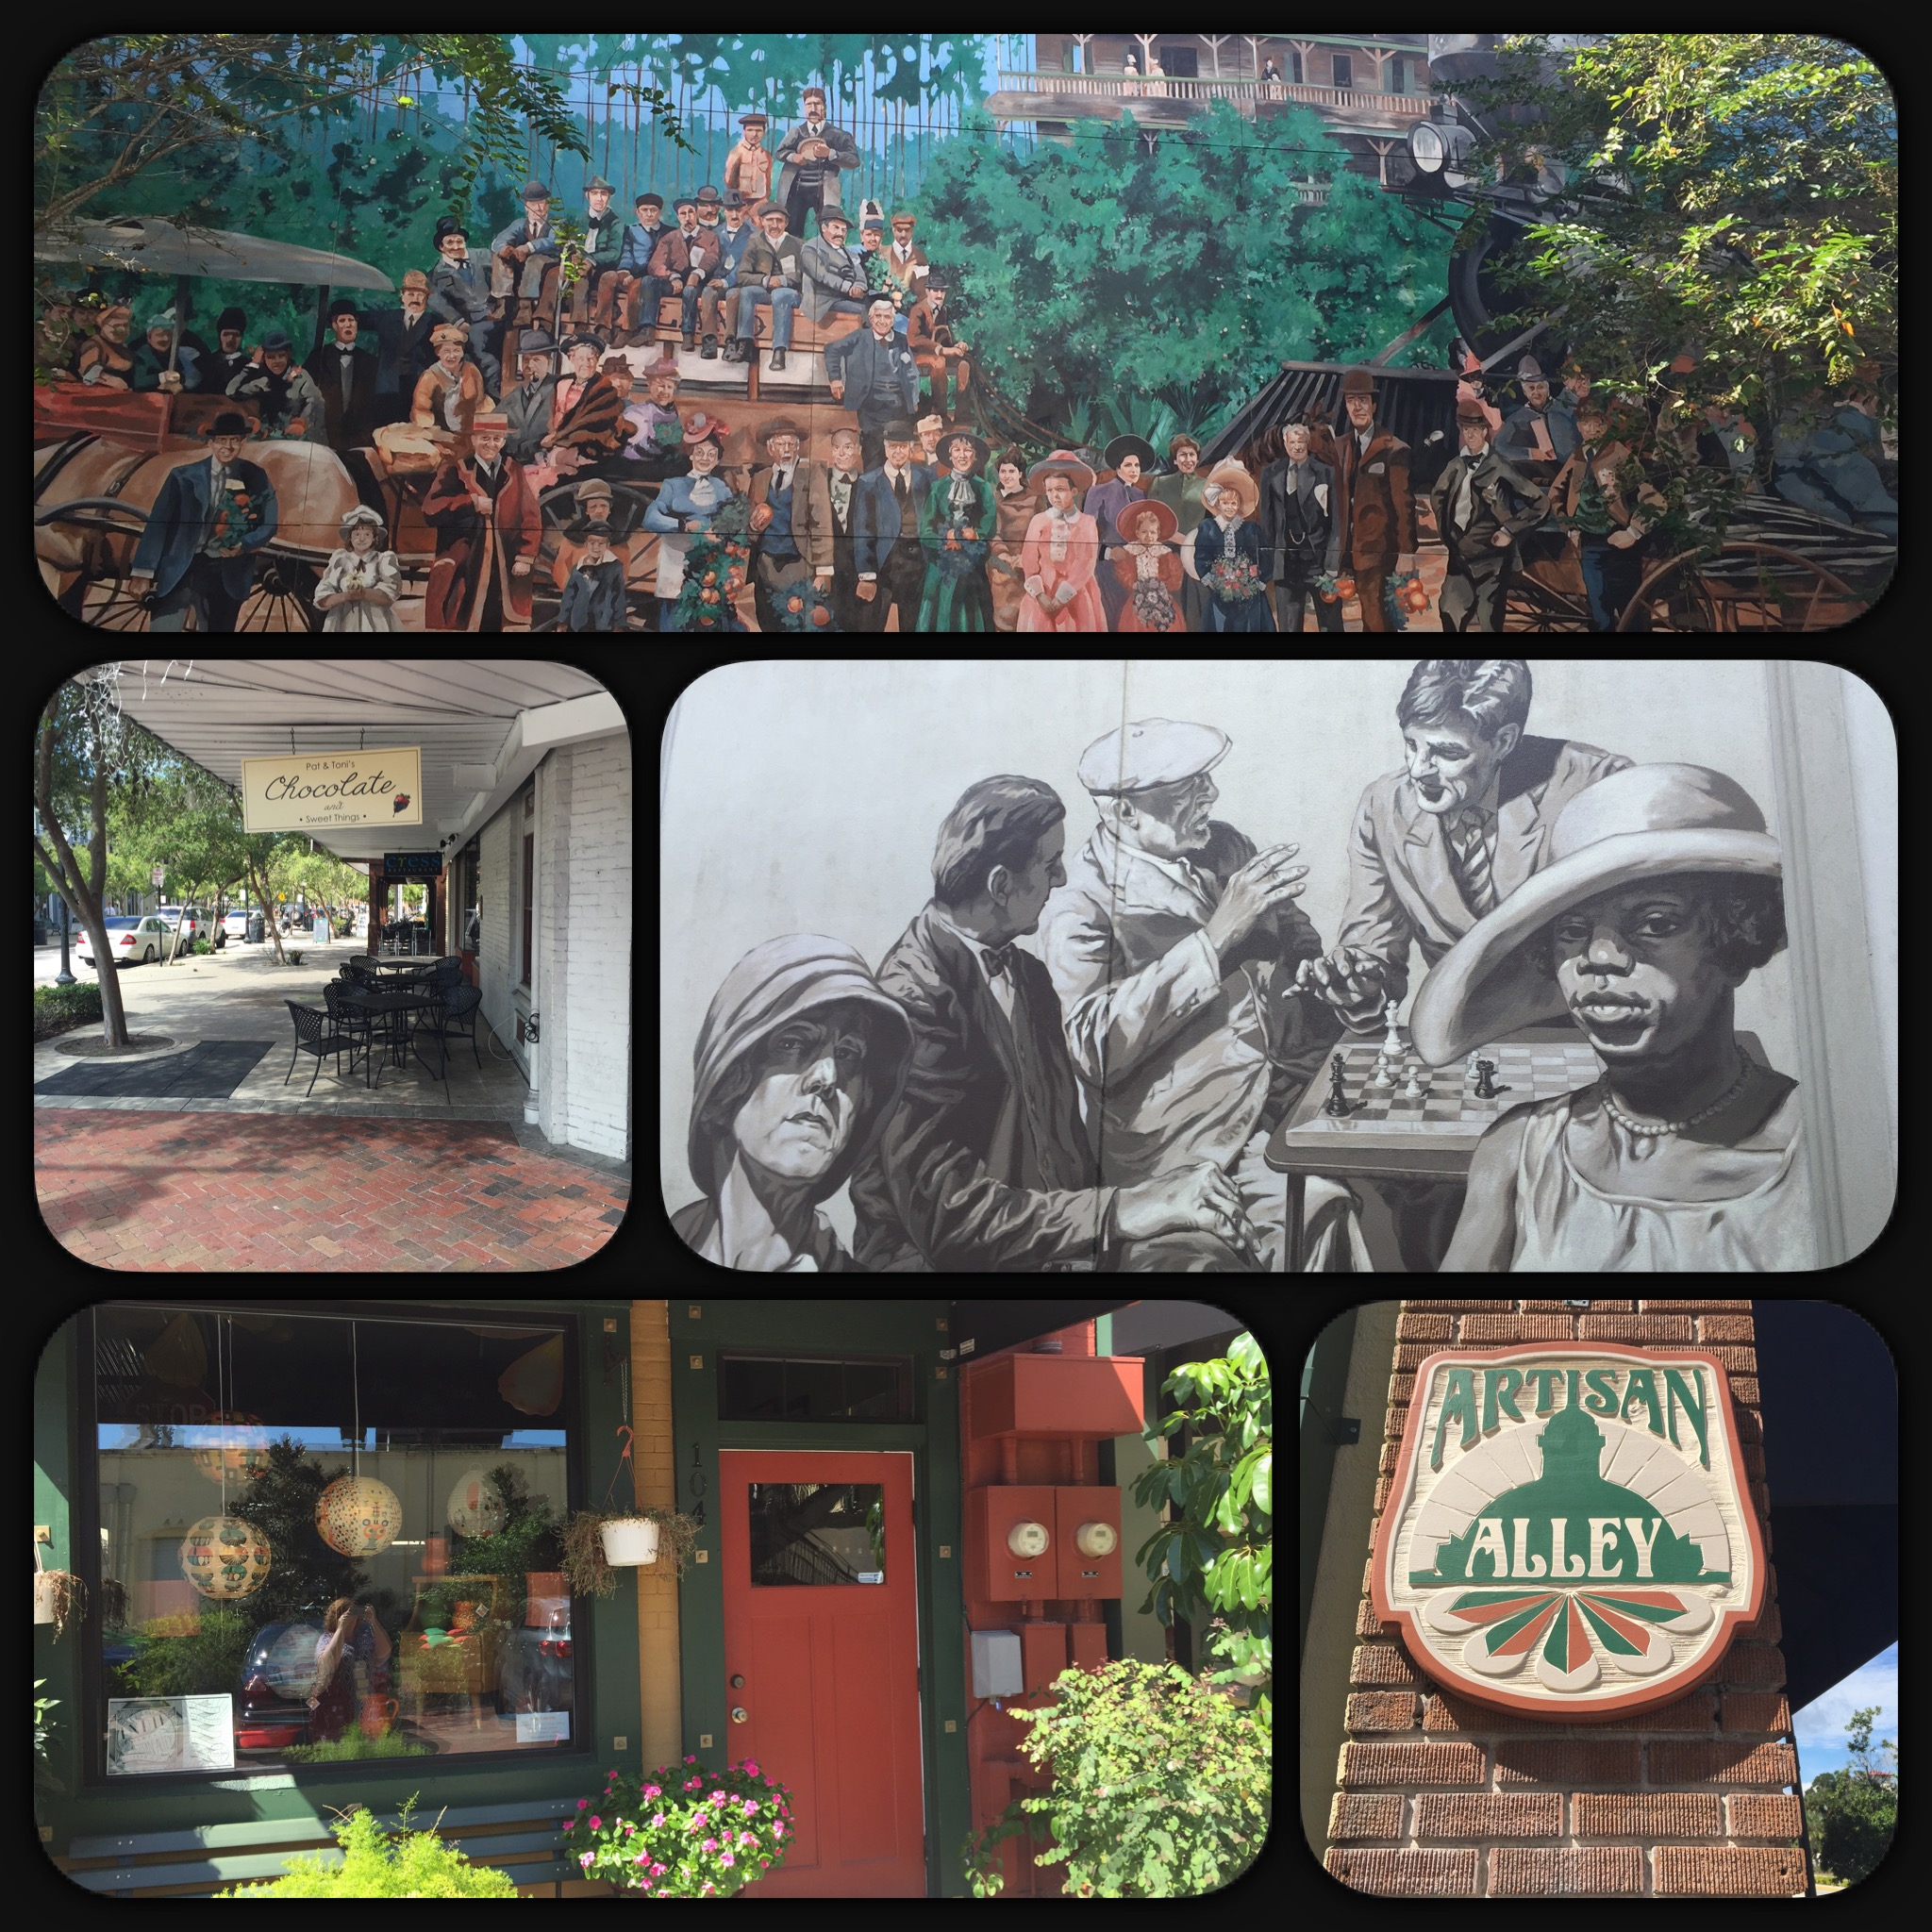 Downtown DeLand - Affordable Things To Do In DeLand, FL